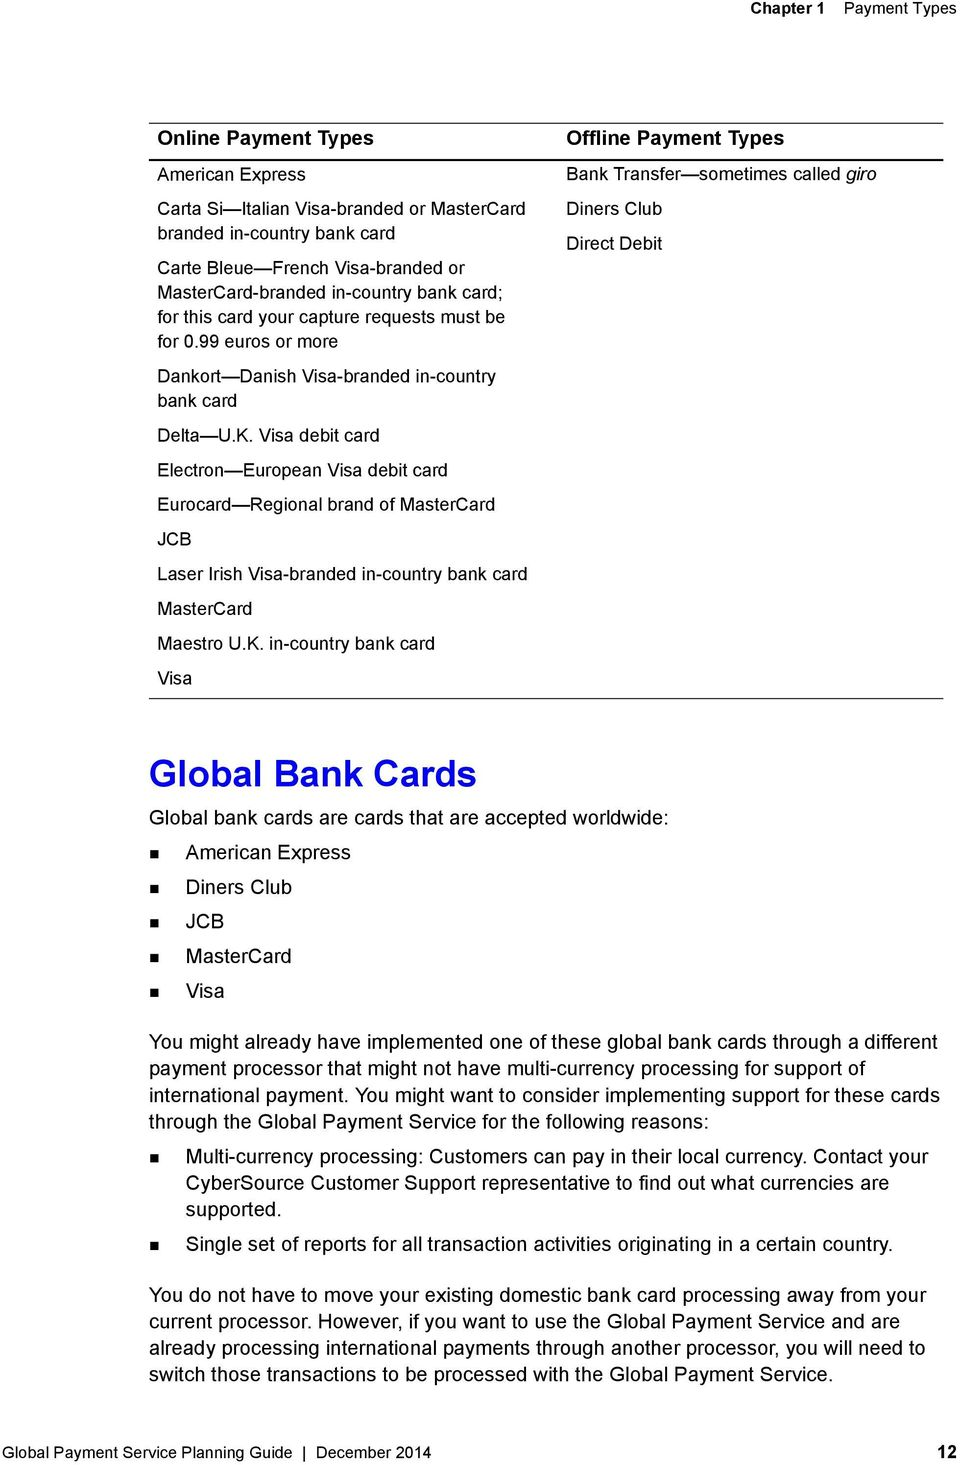 CyberSource Global Payment Service - PDF